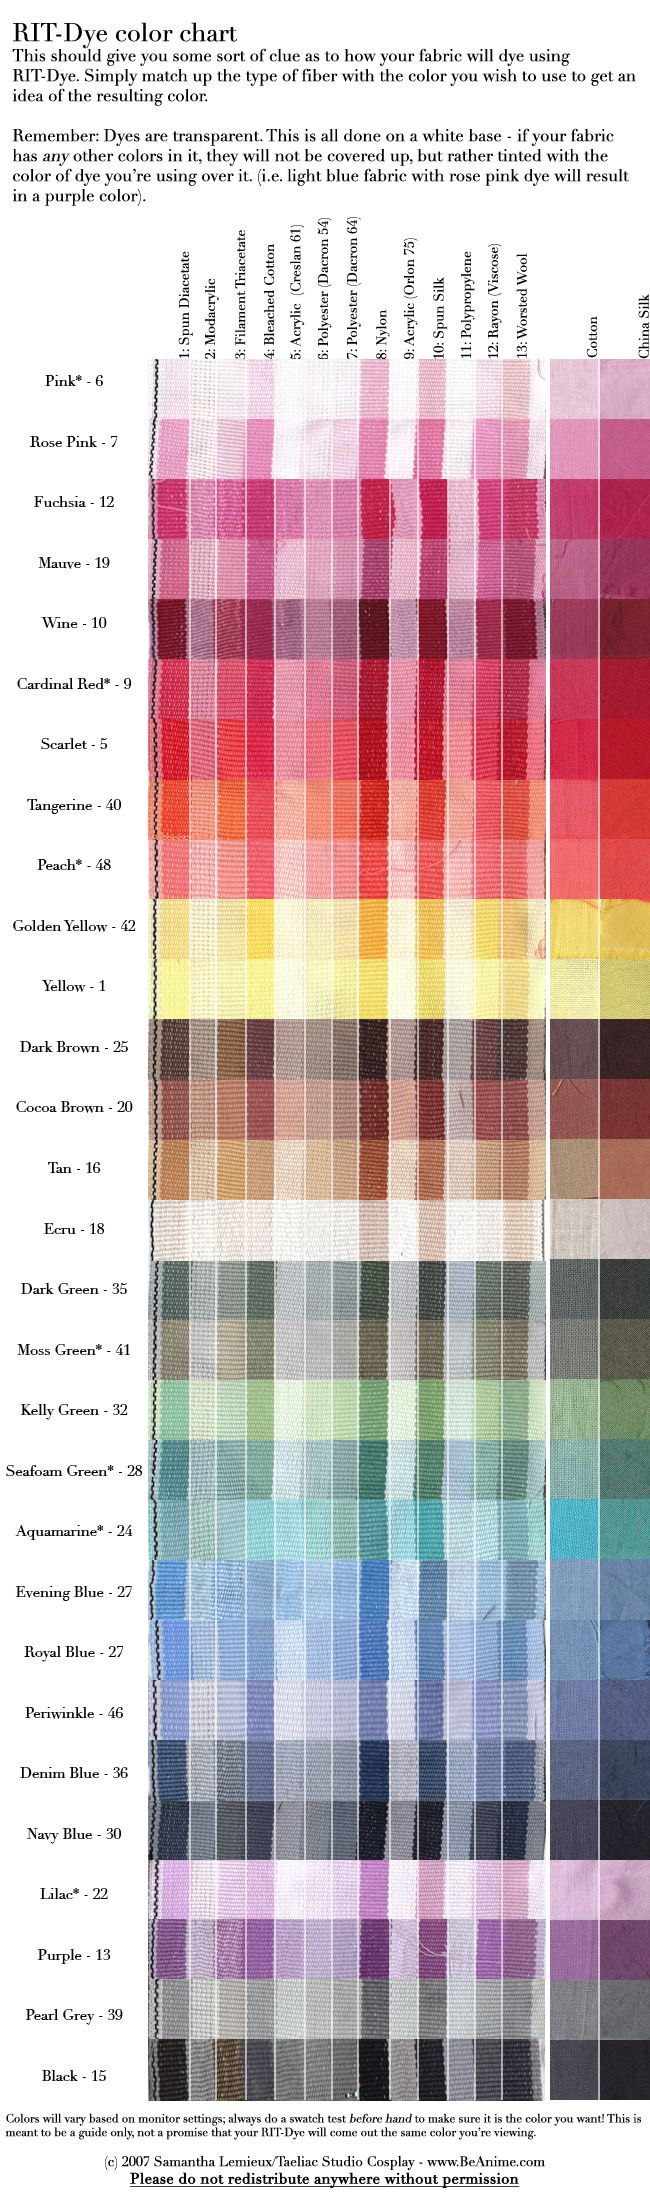 RIT Dye Color Chart. It includes wool, but the wool swatches are weird looking. I wouldn't use Rit on wool unless it was all I could get.